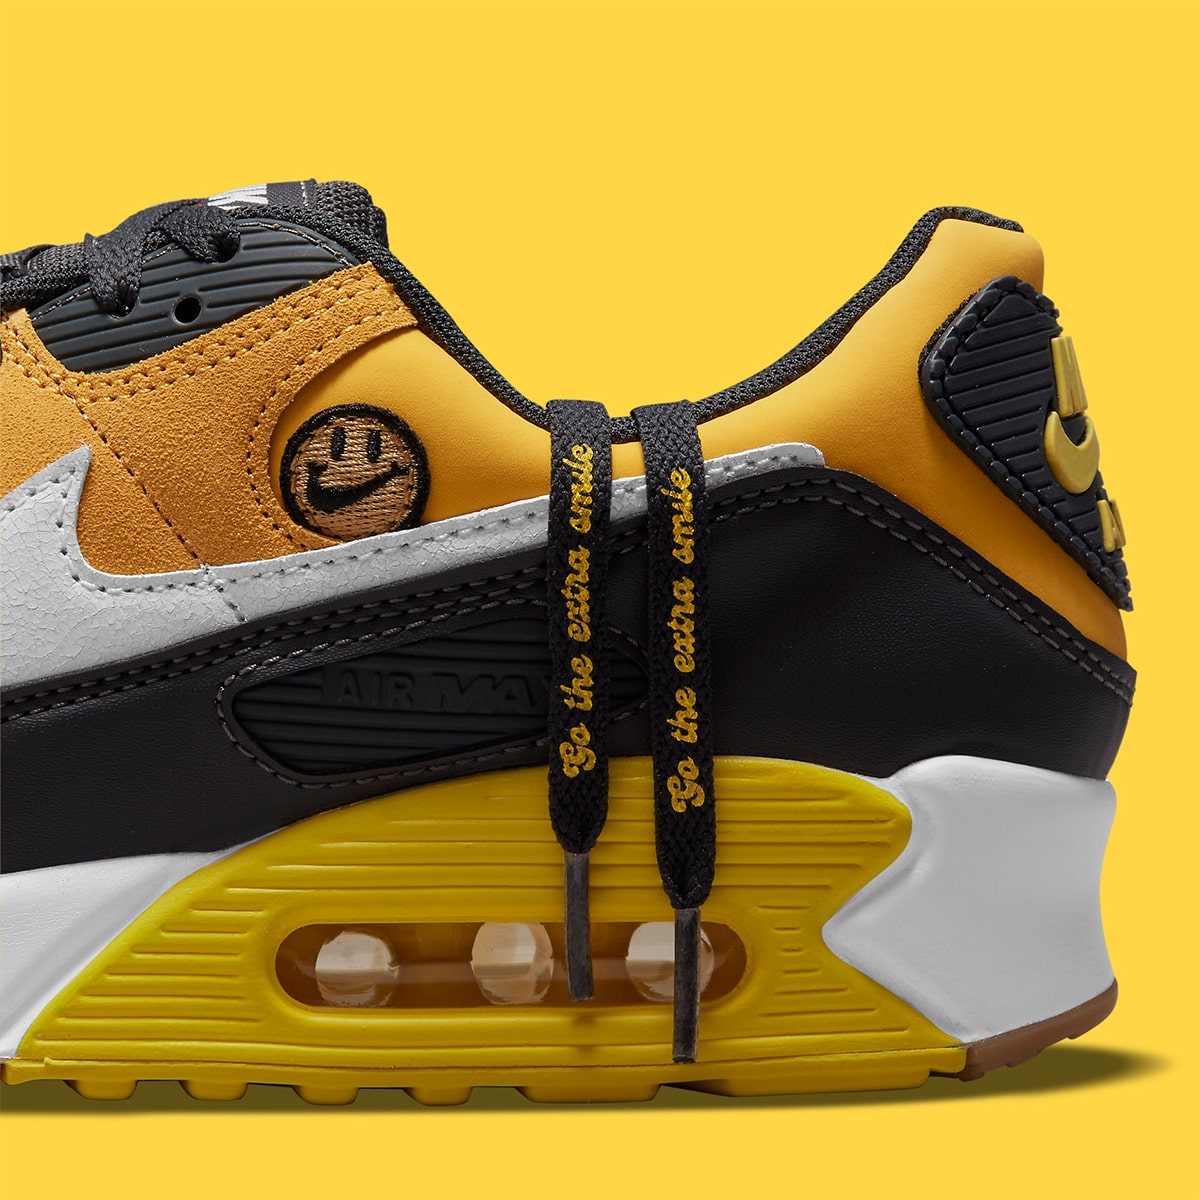 Nike Drops More Joy With the Air Max 90